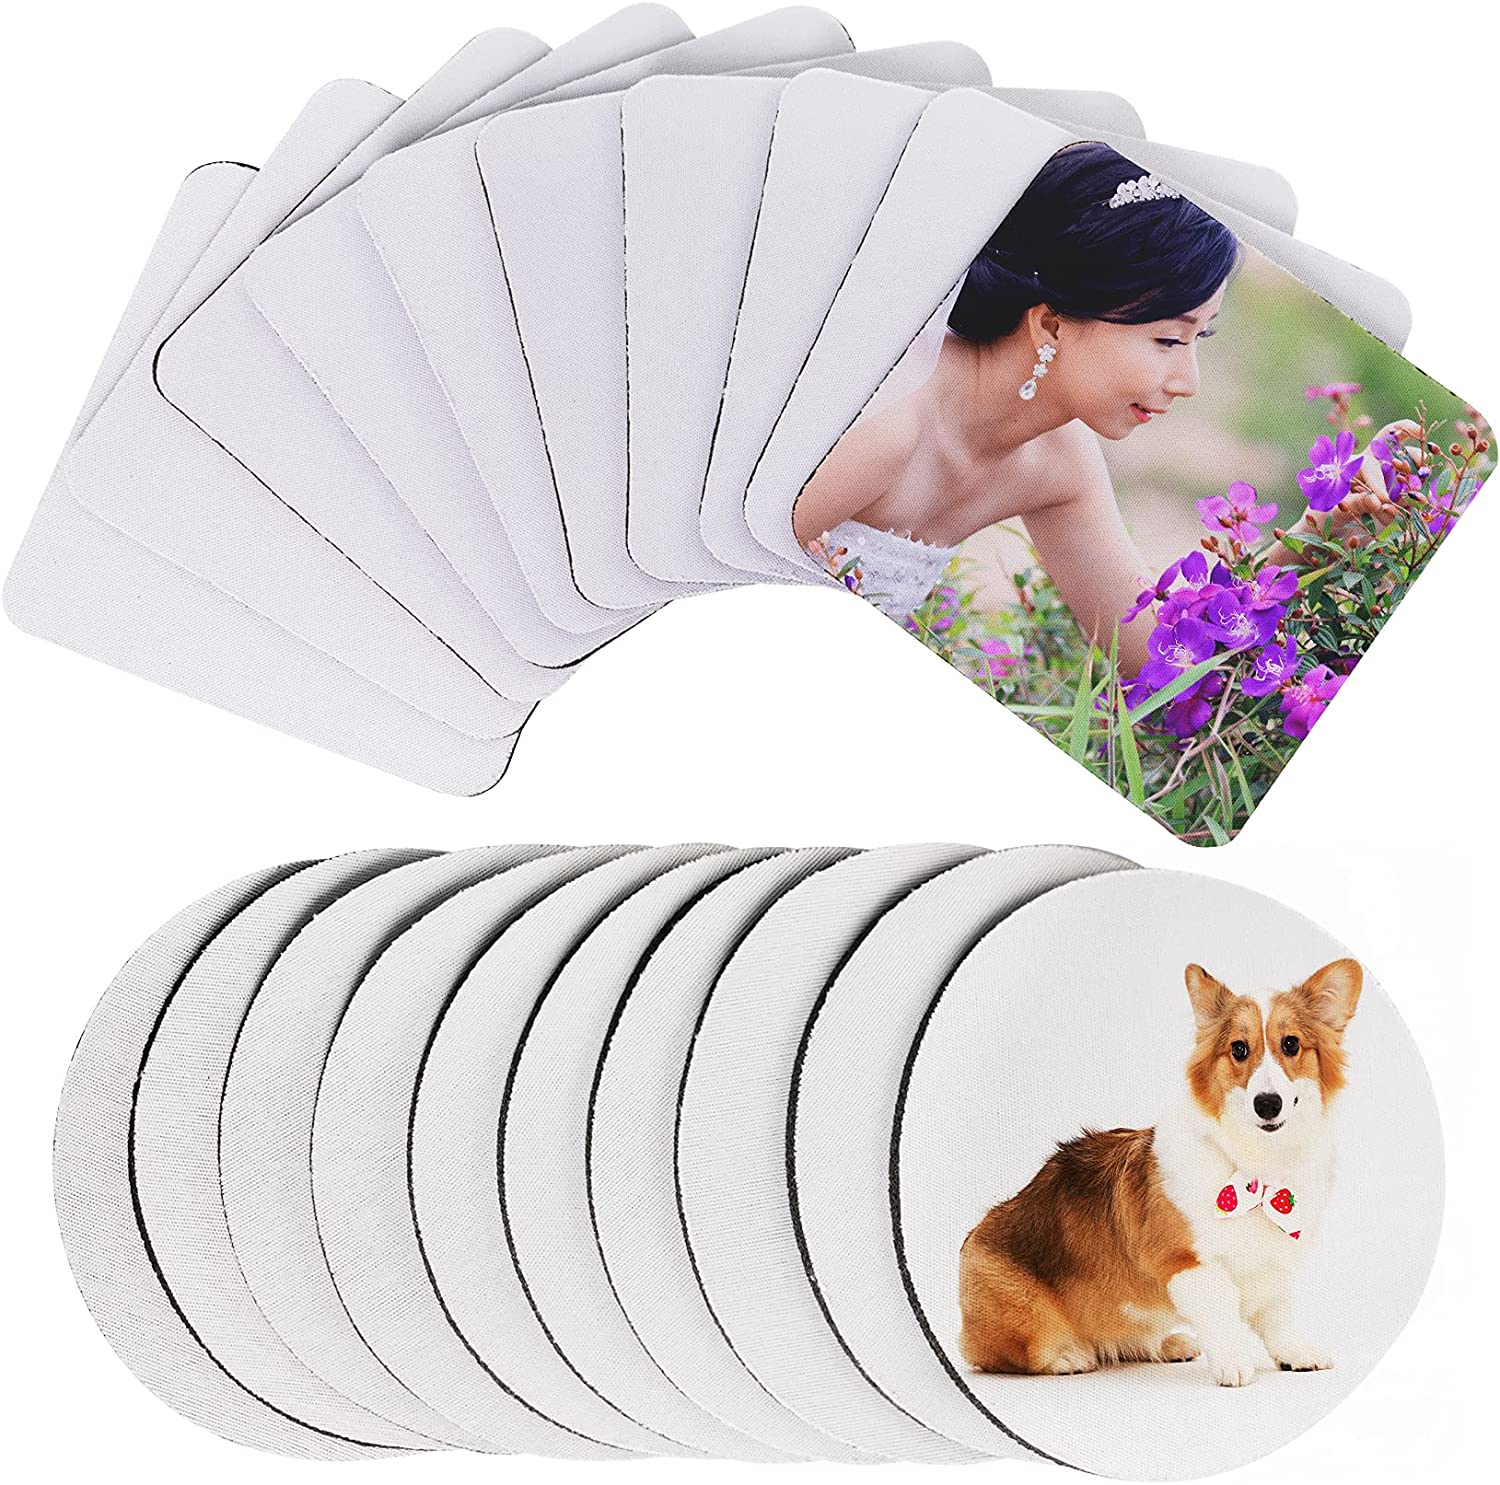 20 Pcs Sublimation Blank Coasters Rubber Cup Heat Press Transfer Max 57% OFF Max 75% OFF